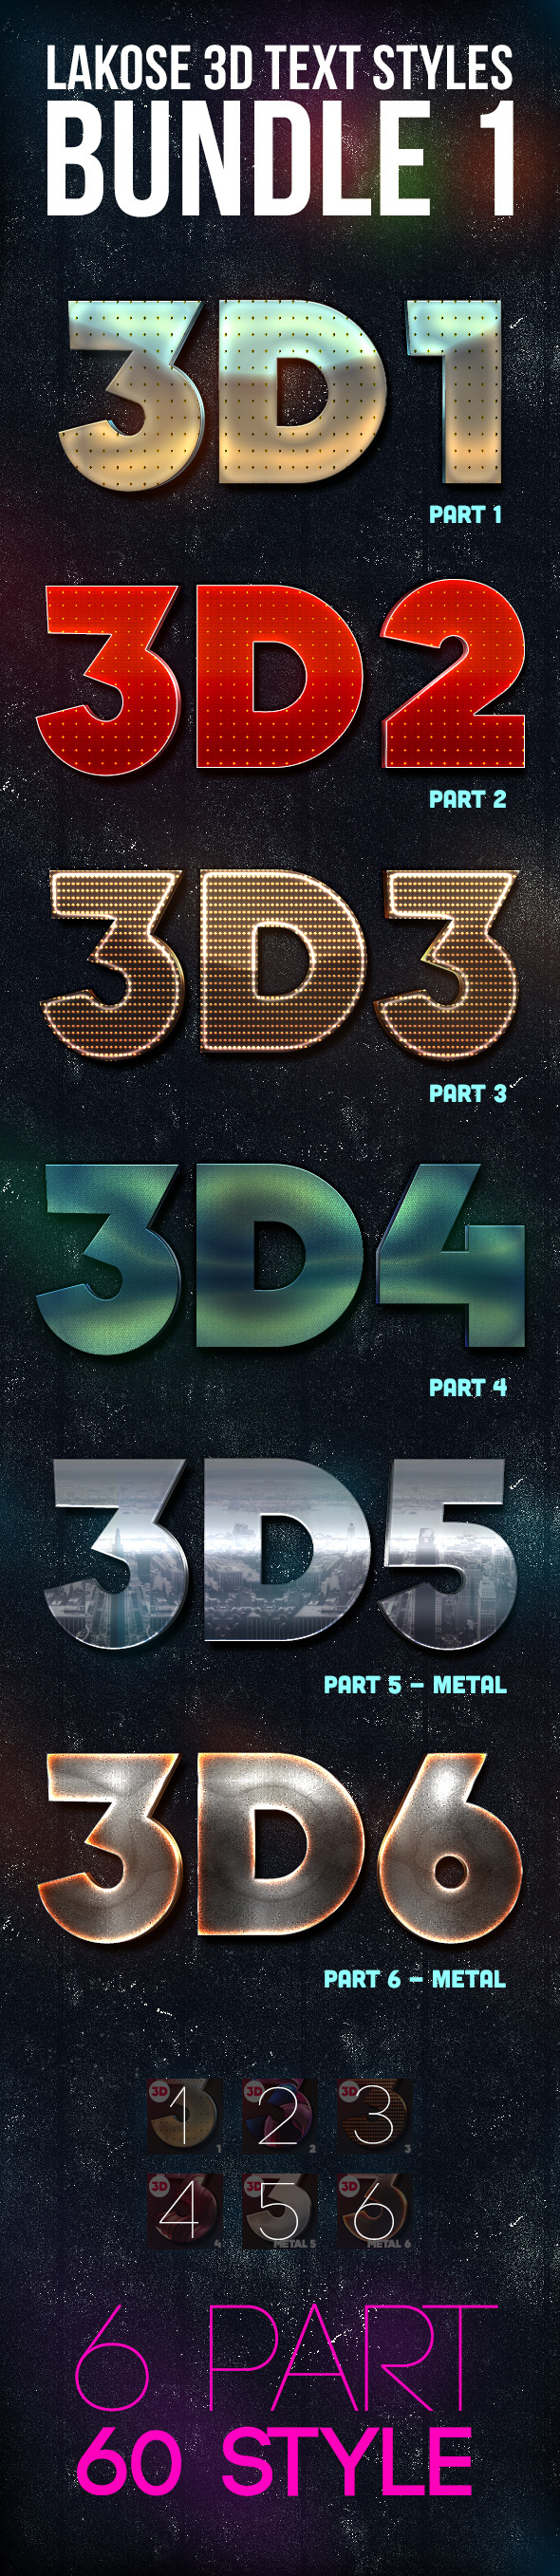 Lakose 3D Text Styles Bundle 1 - Text Effects Styles